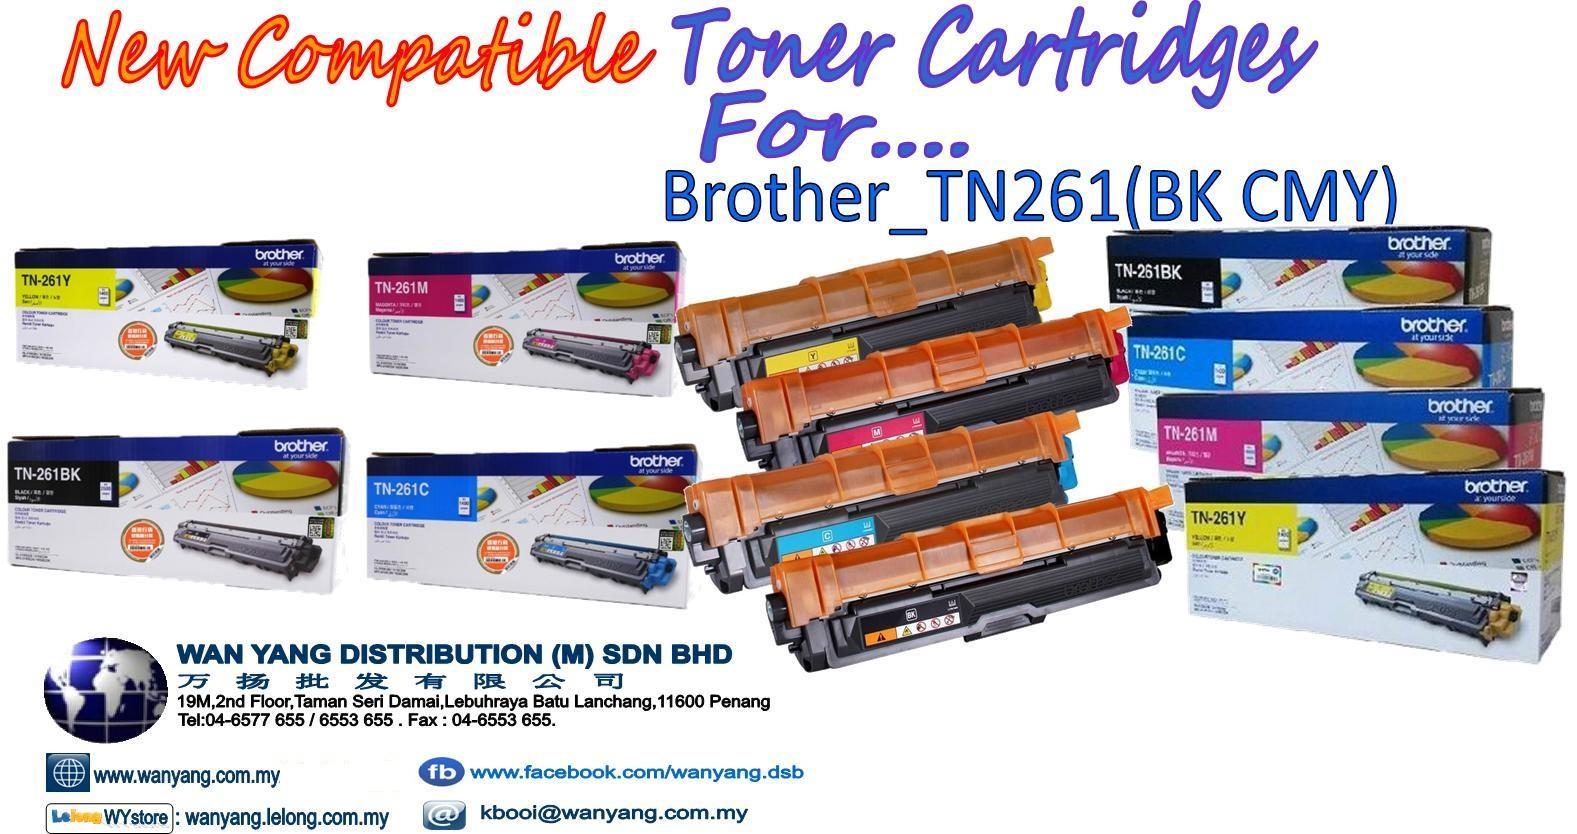 BROTHER  TN261 ( BK CMY ) Compatible Toner cartridges